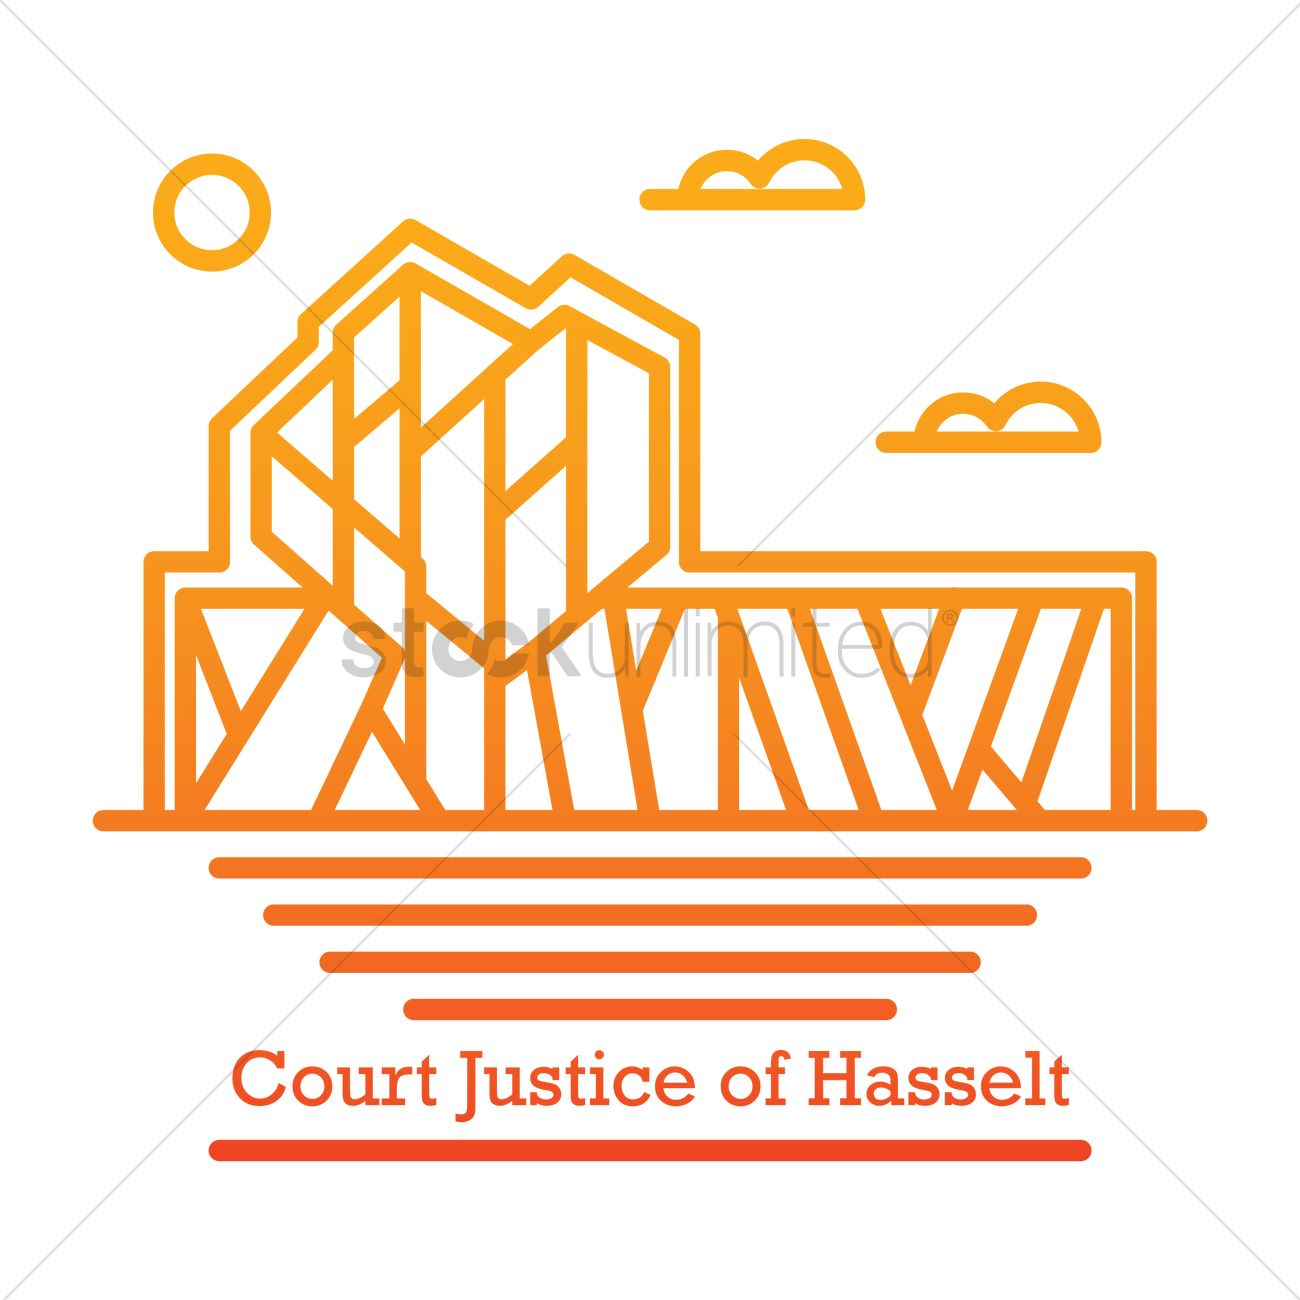 Court justice of hasselt Vector Image.